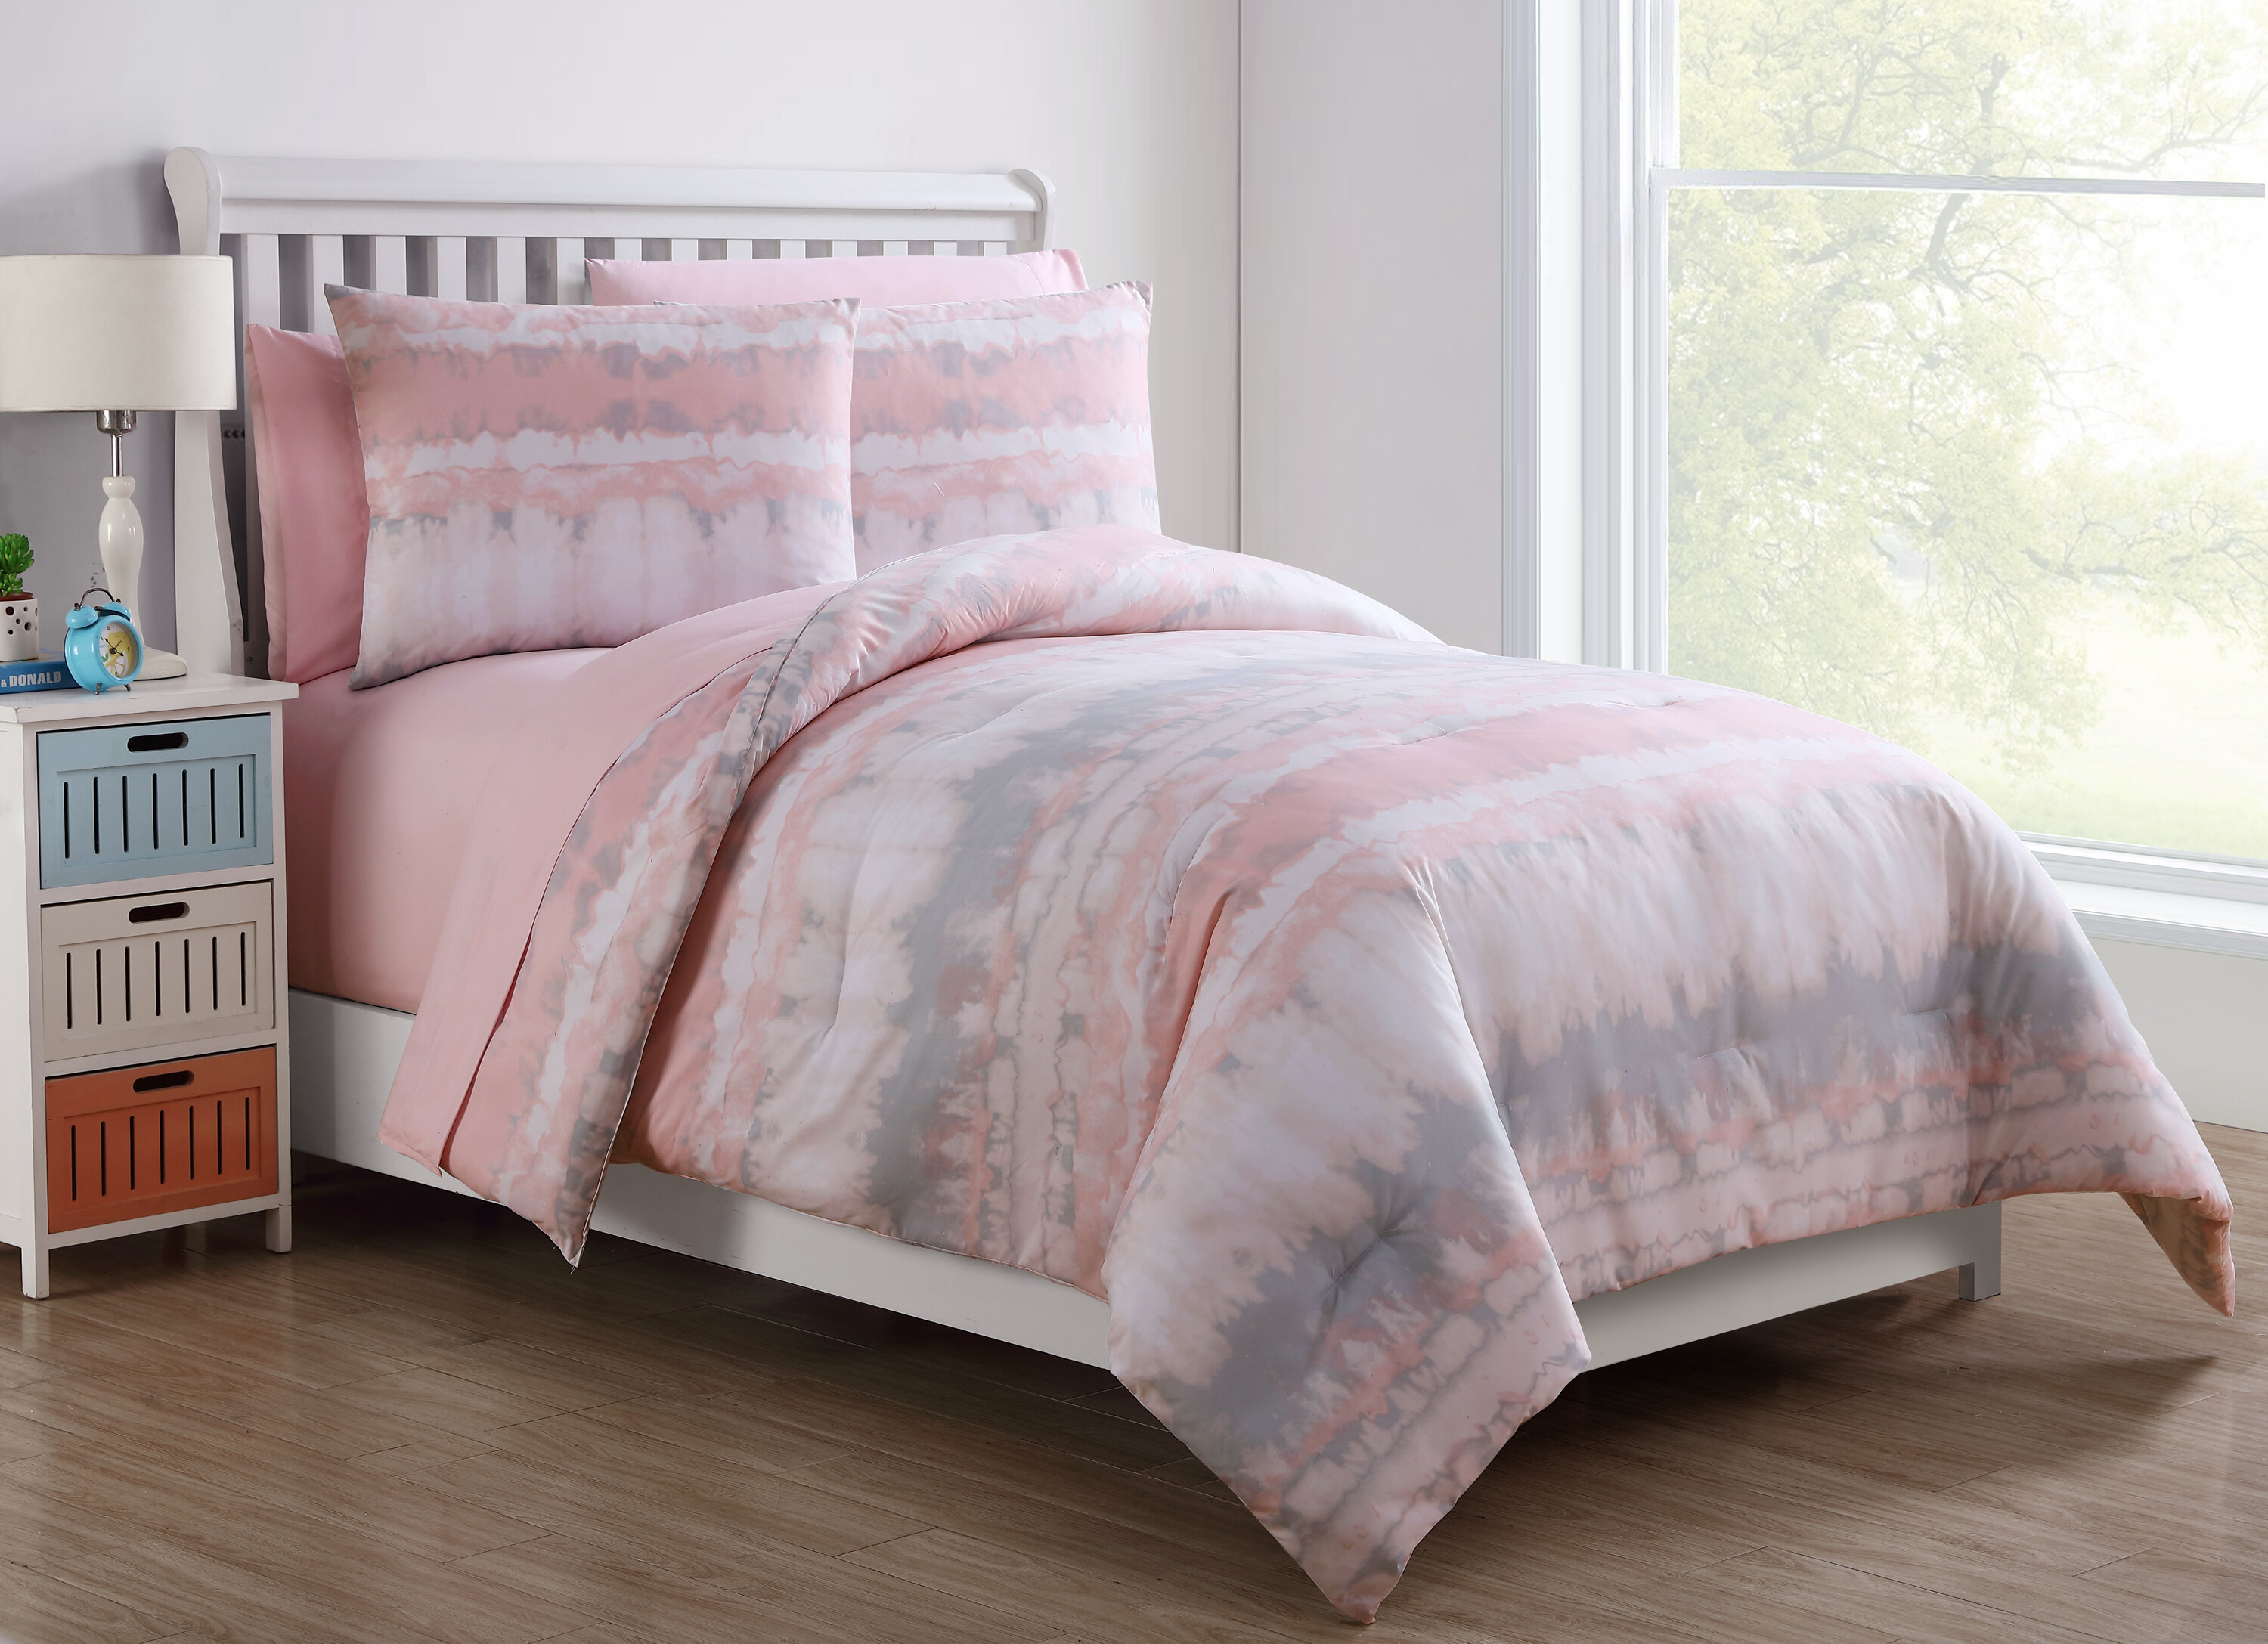 pink gatsby set lansfield duvet blush luxury cover bedding product catherine superking